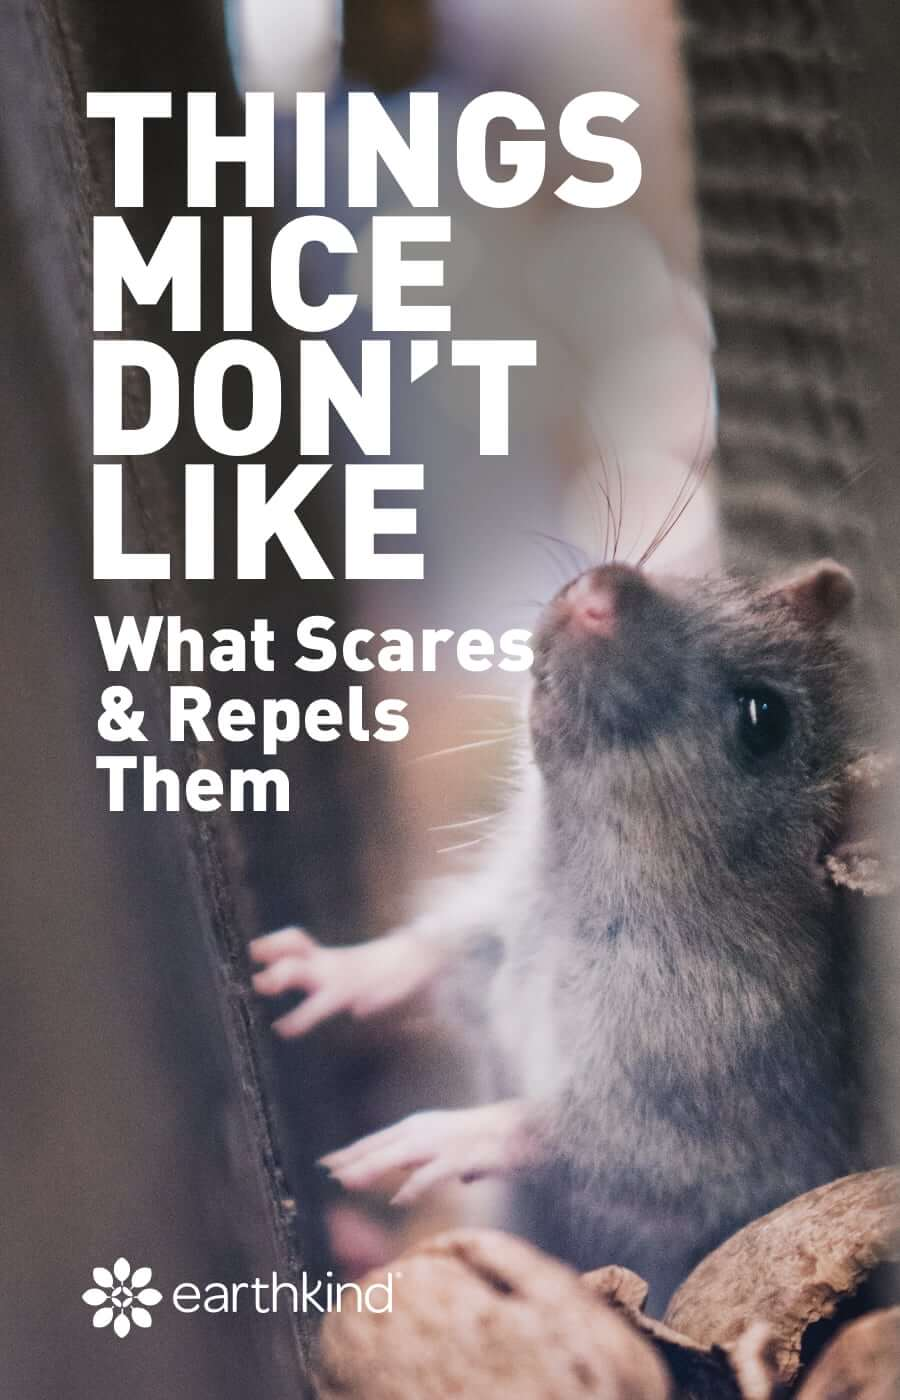 Things Mice Don't Like - What Scares Mice & Repels Them